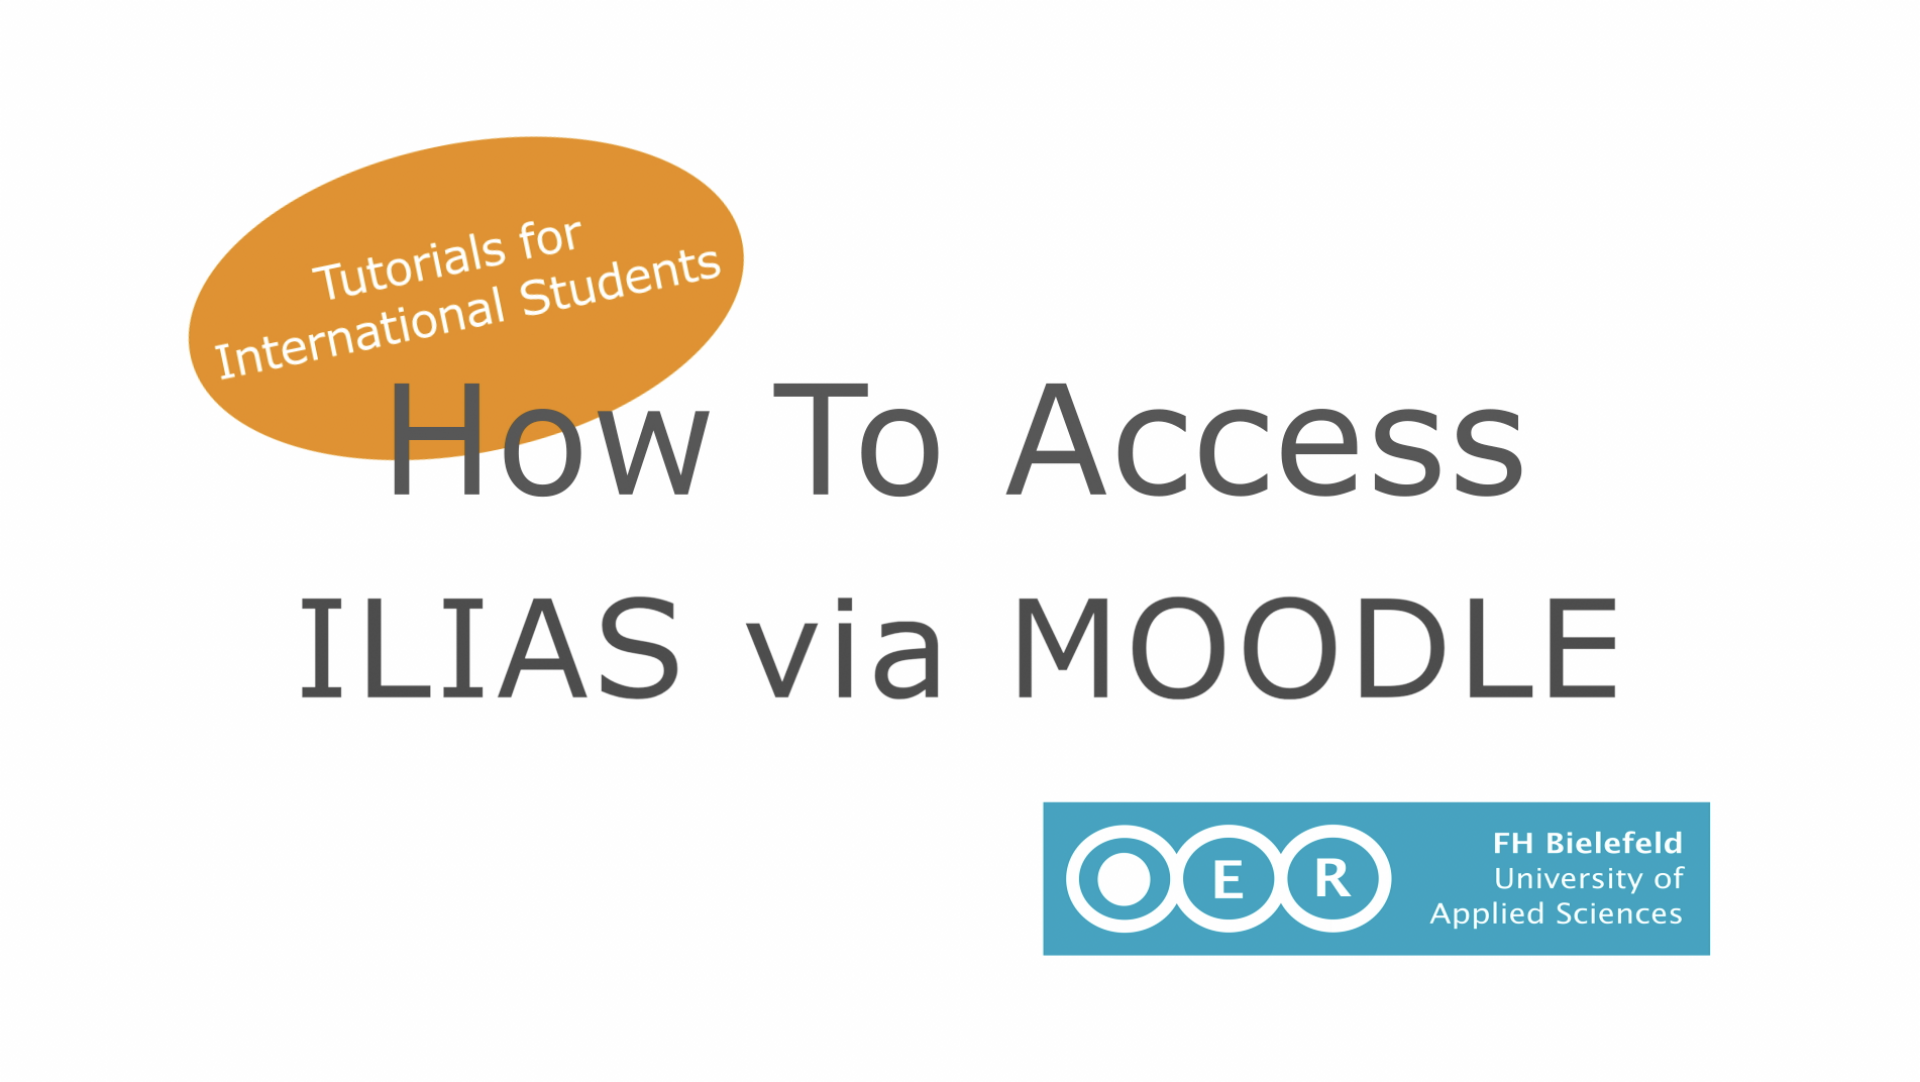 How to Access ILIAS via MOODLE - Tutorial for International Students